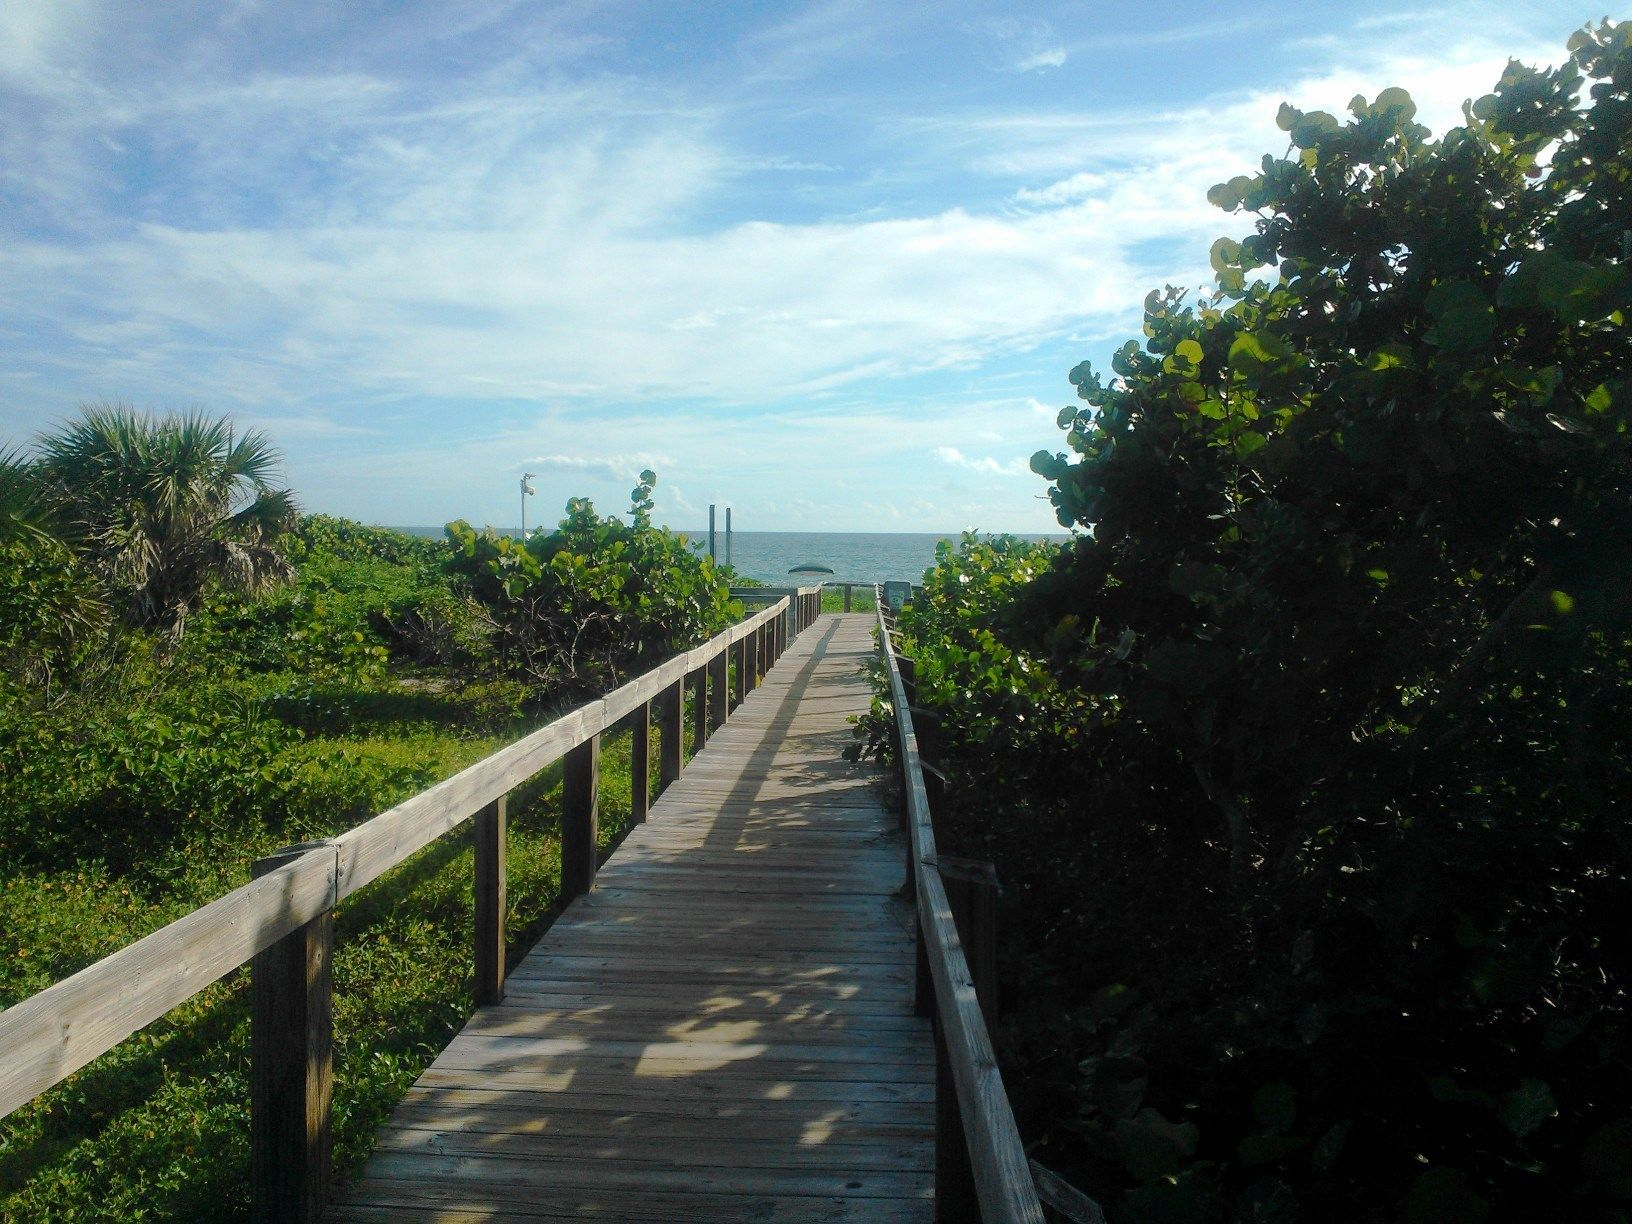 Boardwalk leading to Sebastian Inlet.